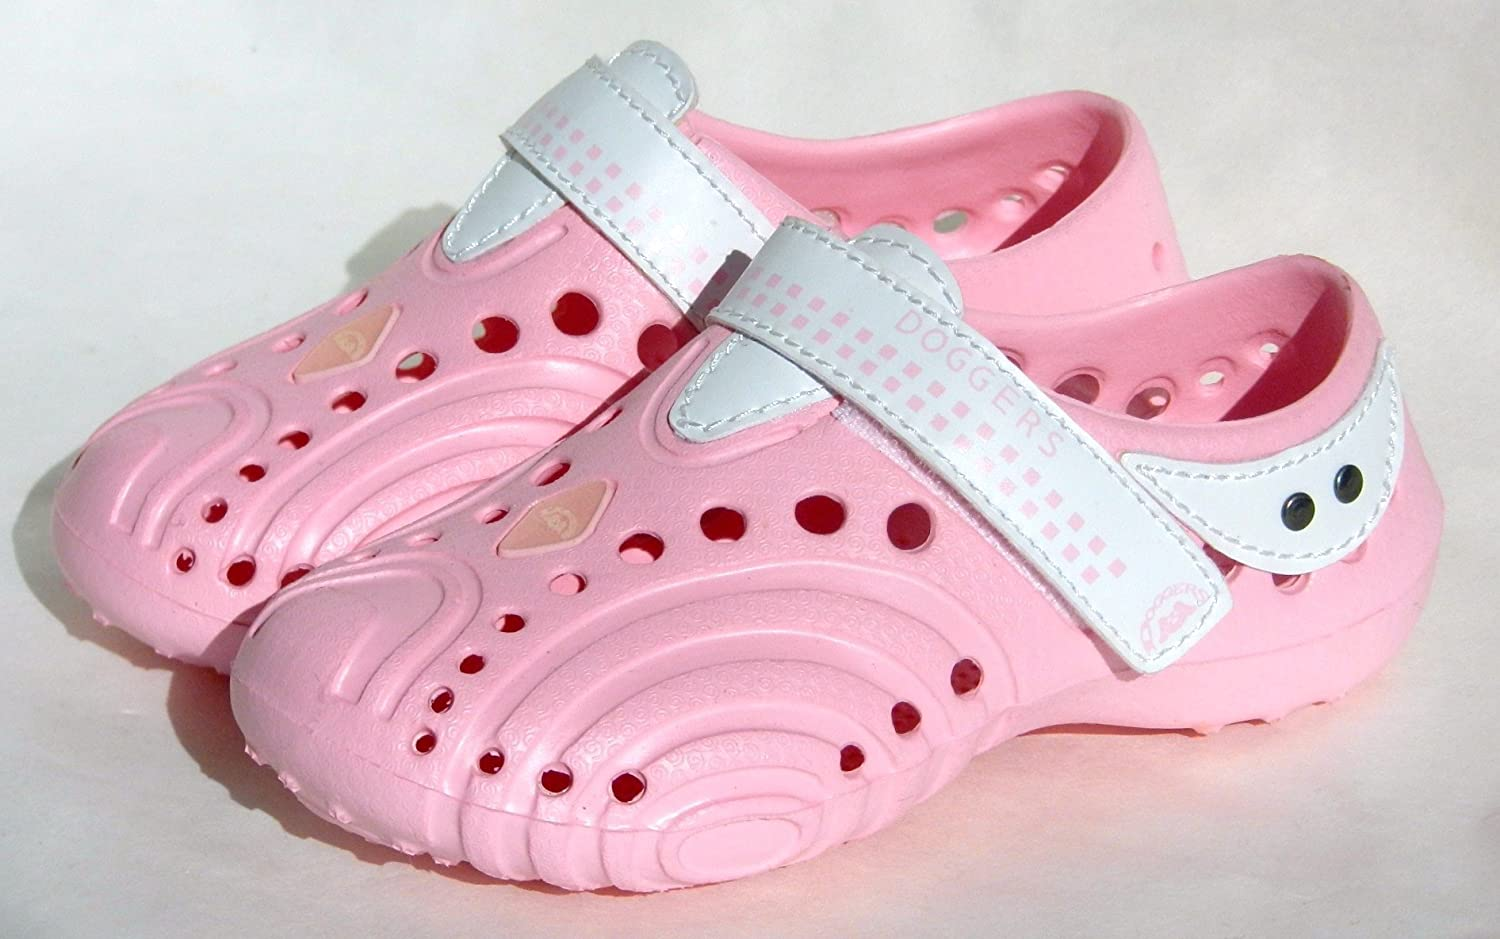 Soft Pink//White Size 3//4 USA Dawgs Inc. Toddler Ultralite Doggers